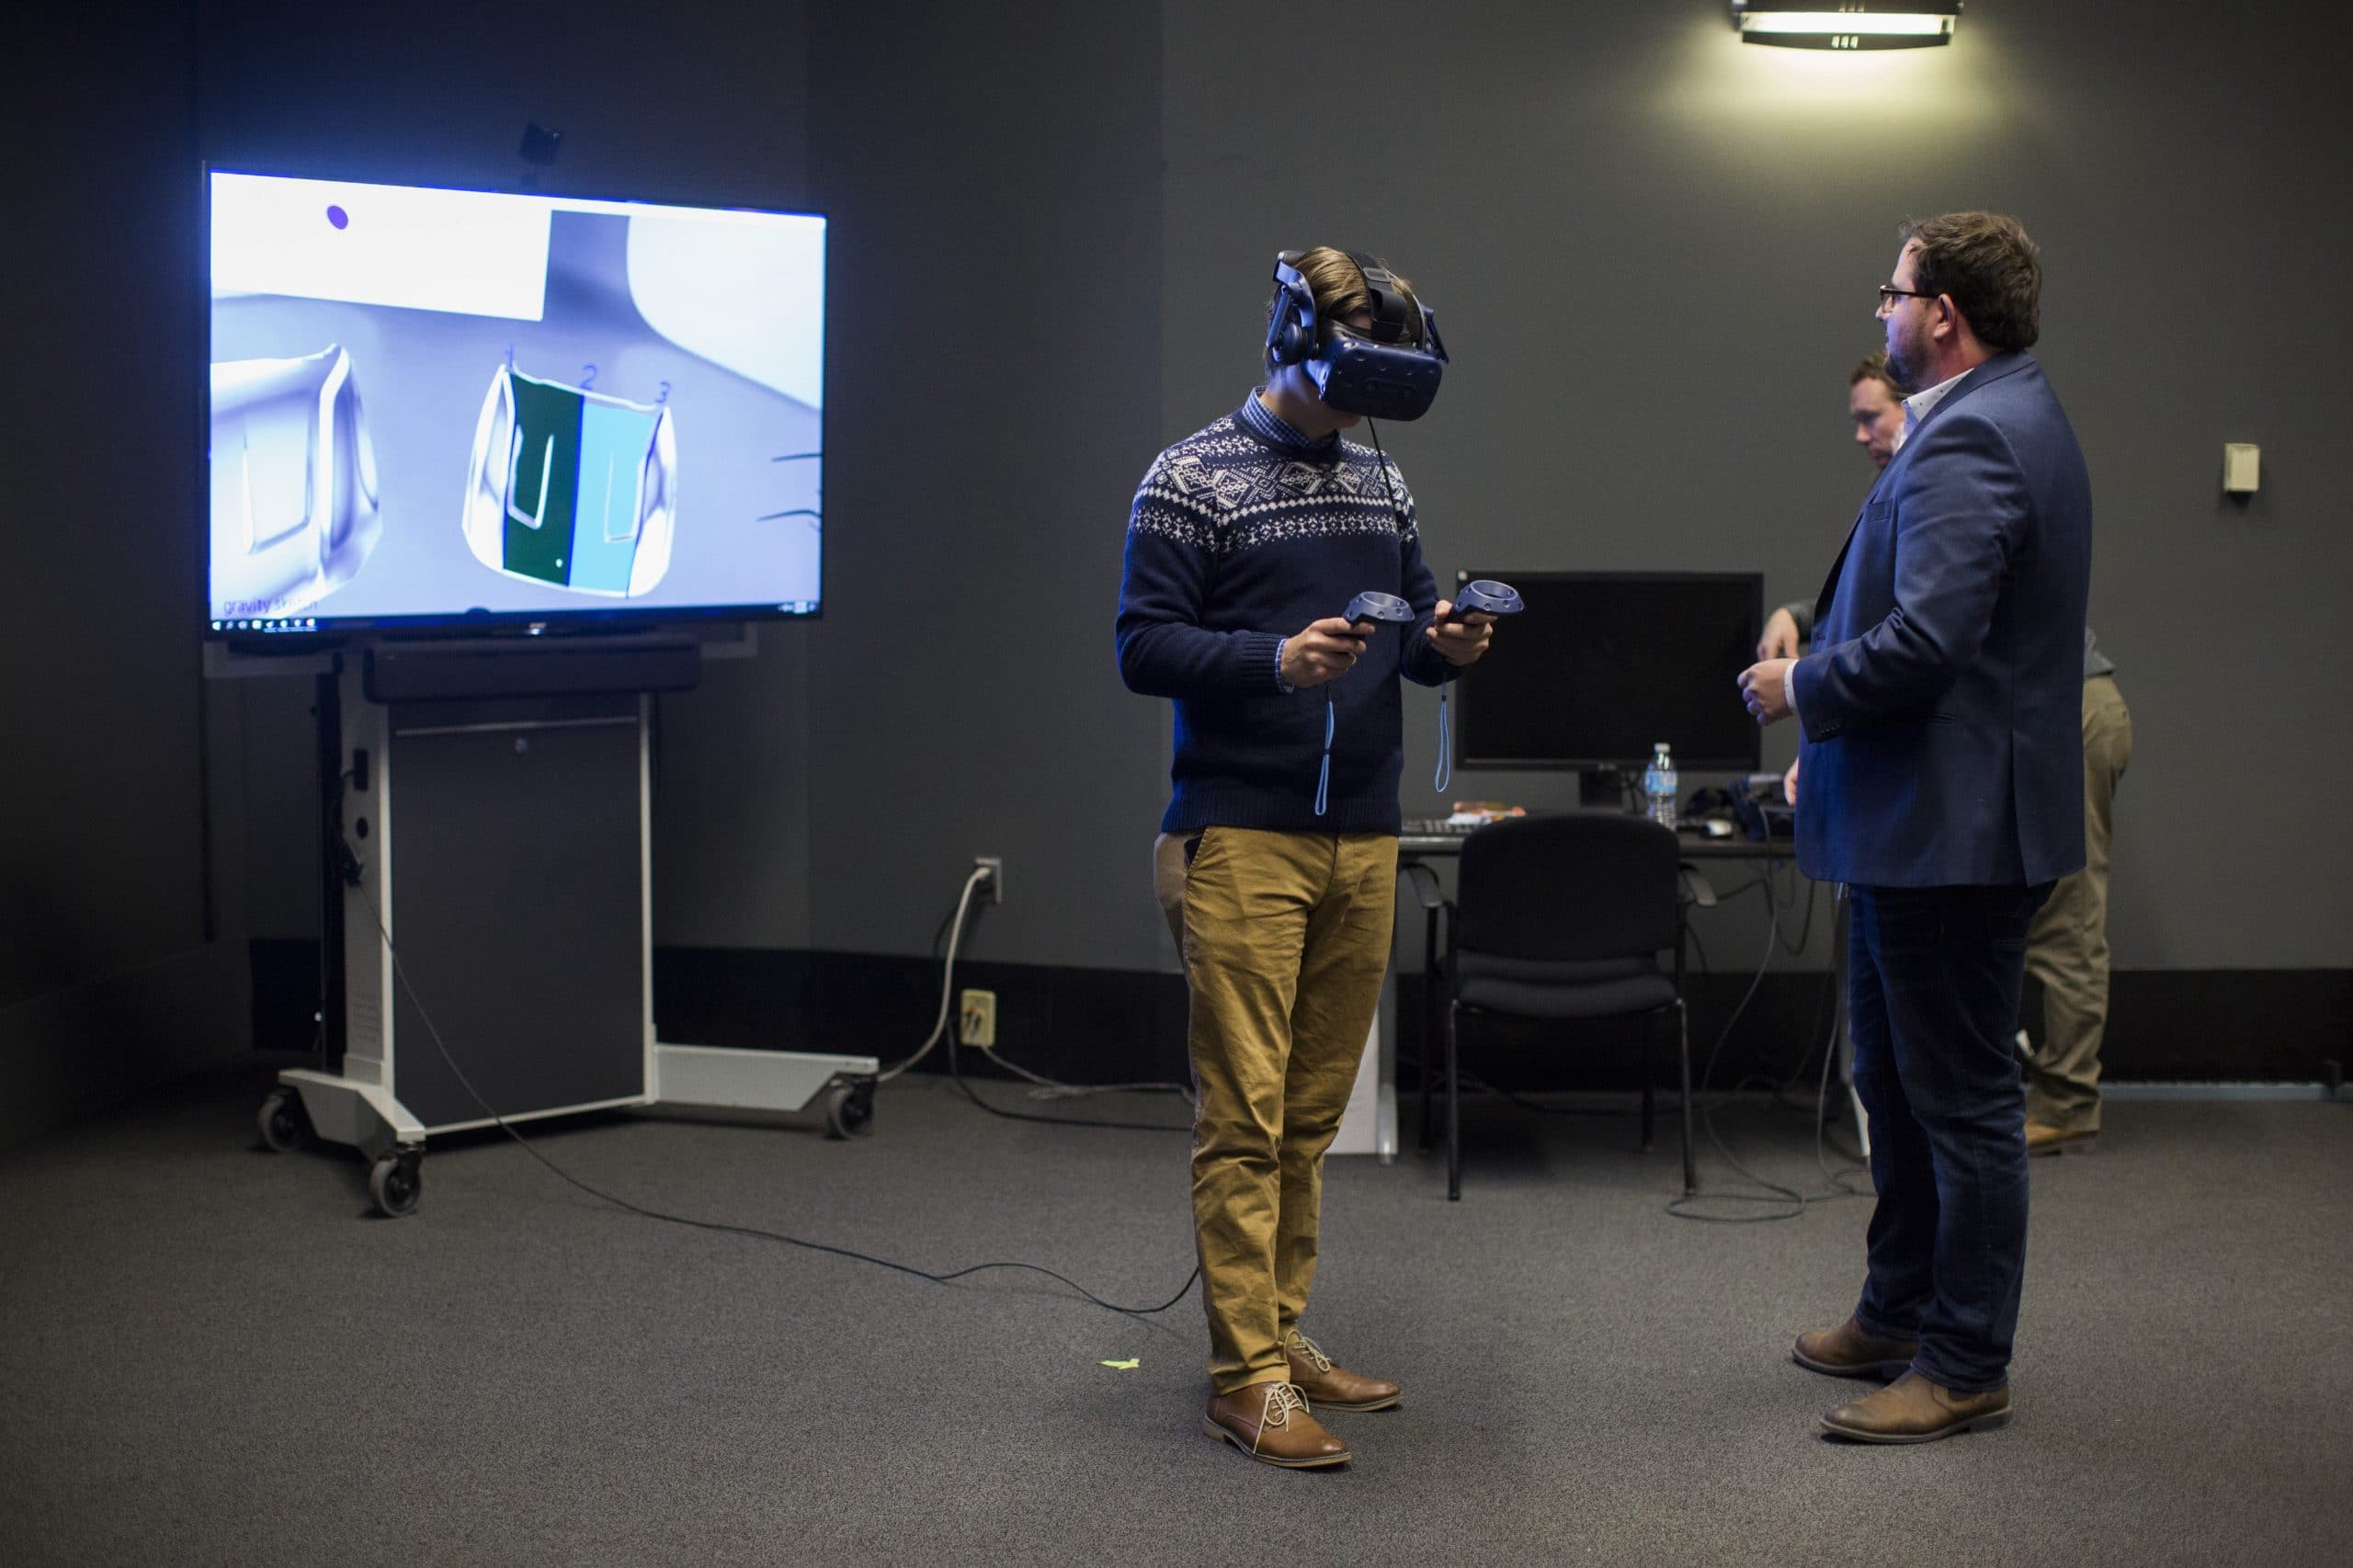 Gravity Sketch - Virtual Reality demonstration with tv, headset and other gear